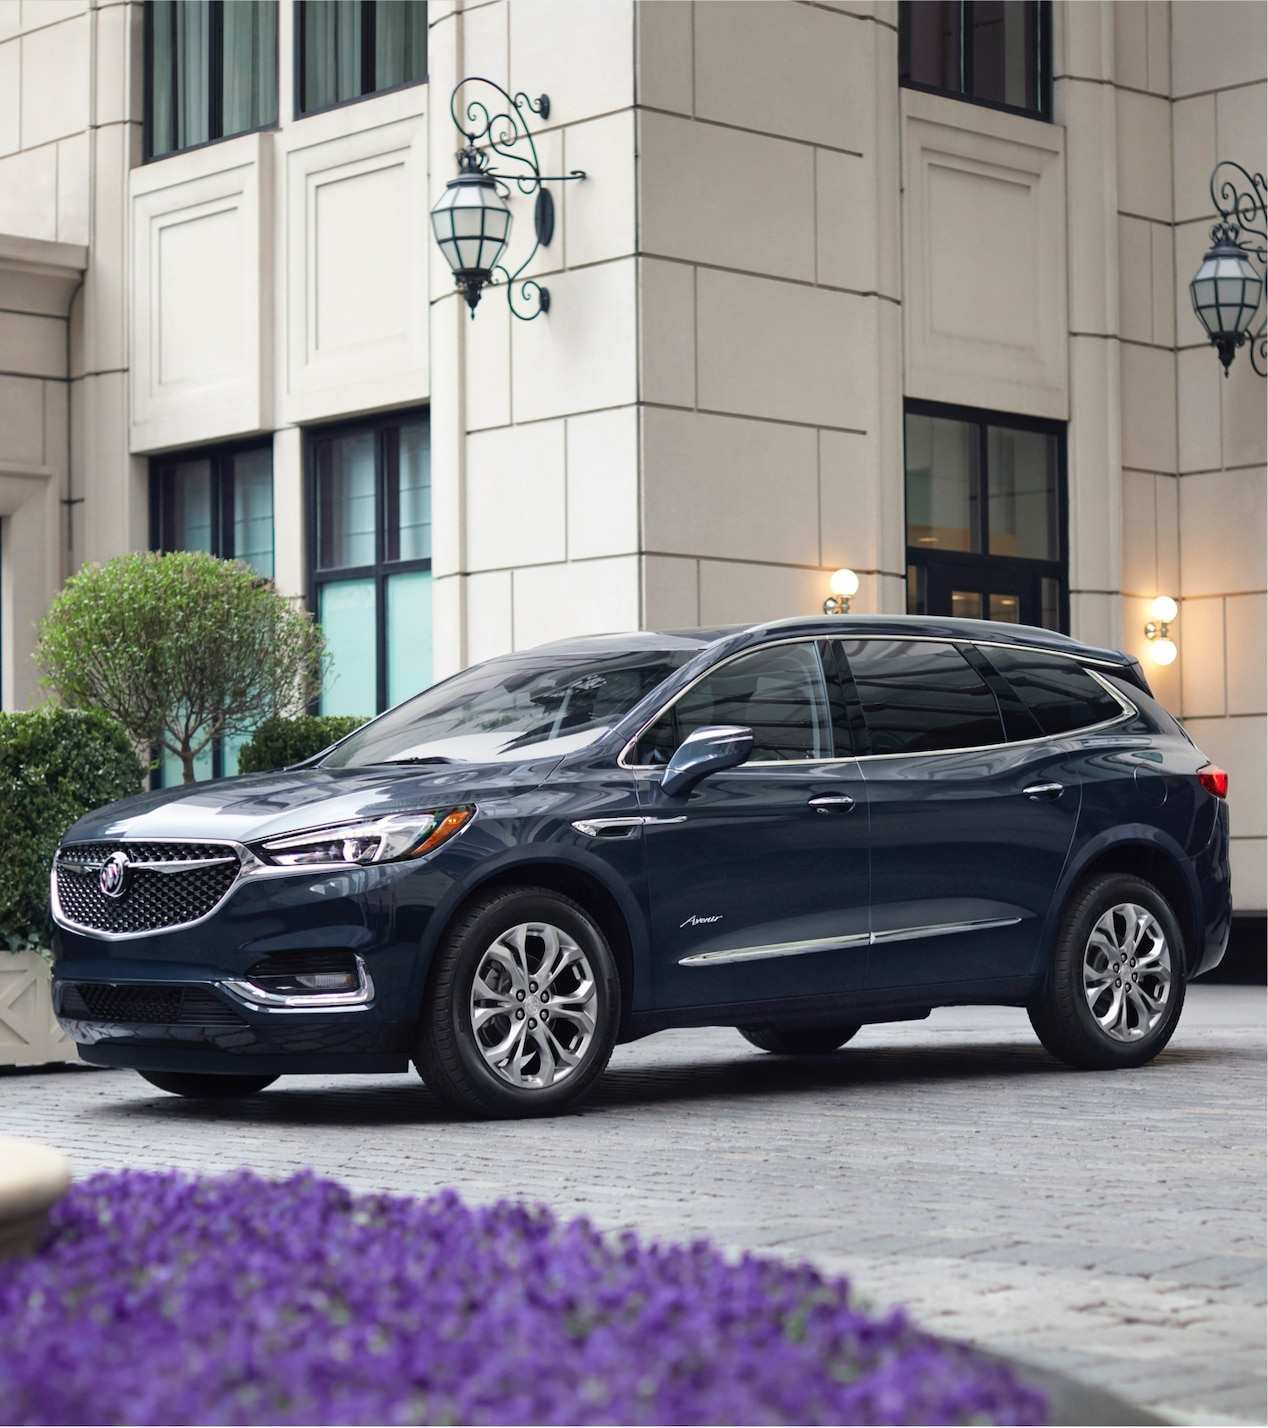 41 Concept of 2019 Buick Lineup Reviews for 2019 Buick Lineup